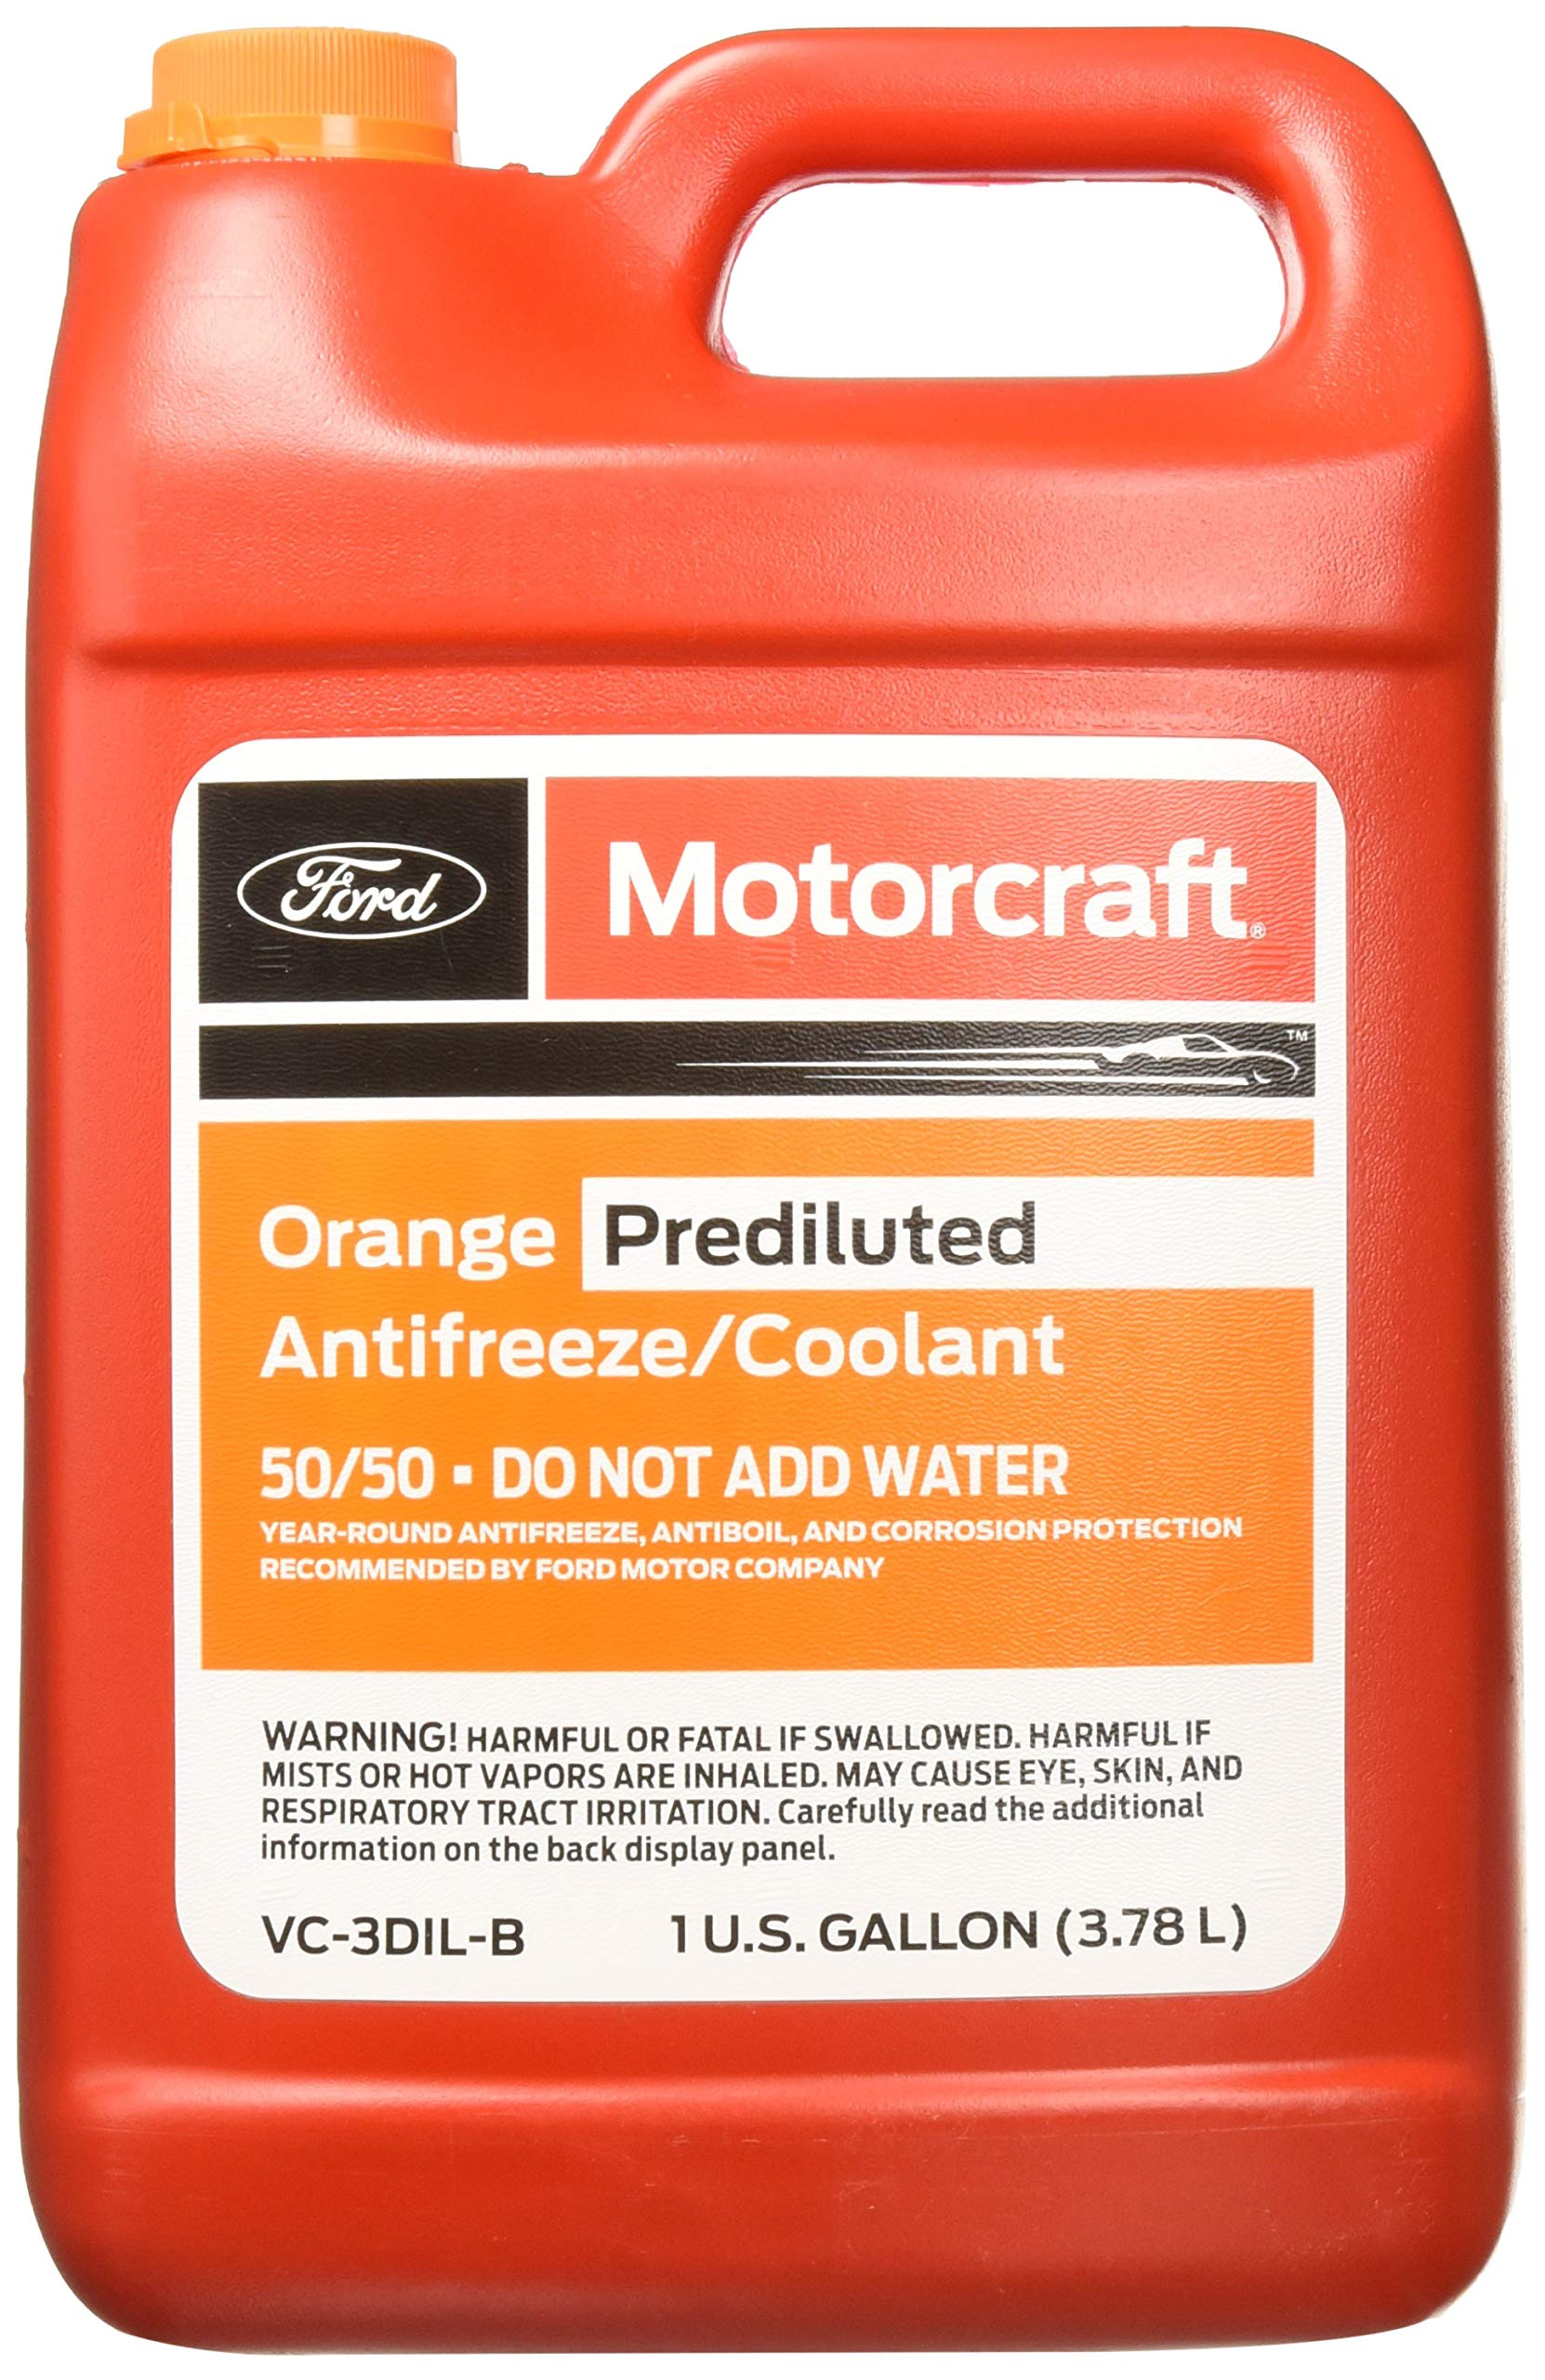 Genuine Ford Fluid VC-3DIL-B Orange Pre-Diluted Antifreeze/Coolant - 1 Gallon by Ford